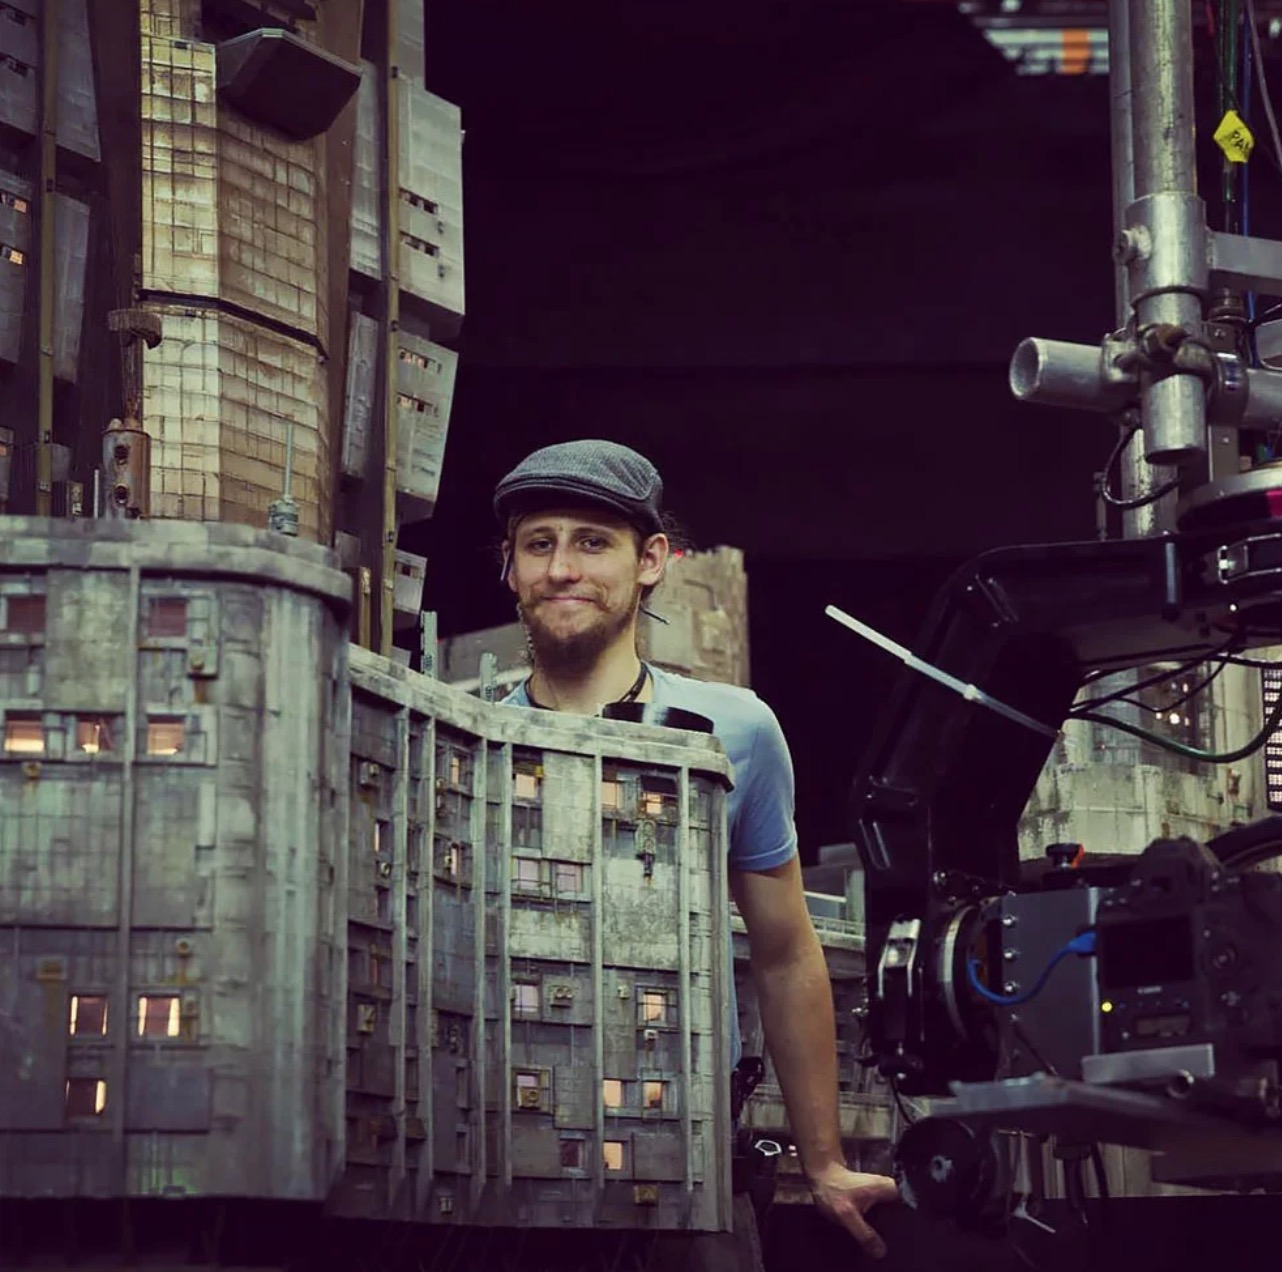 blade runner 2049 – making of miniatures